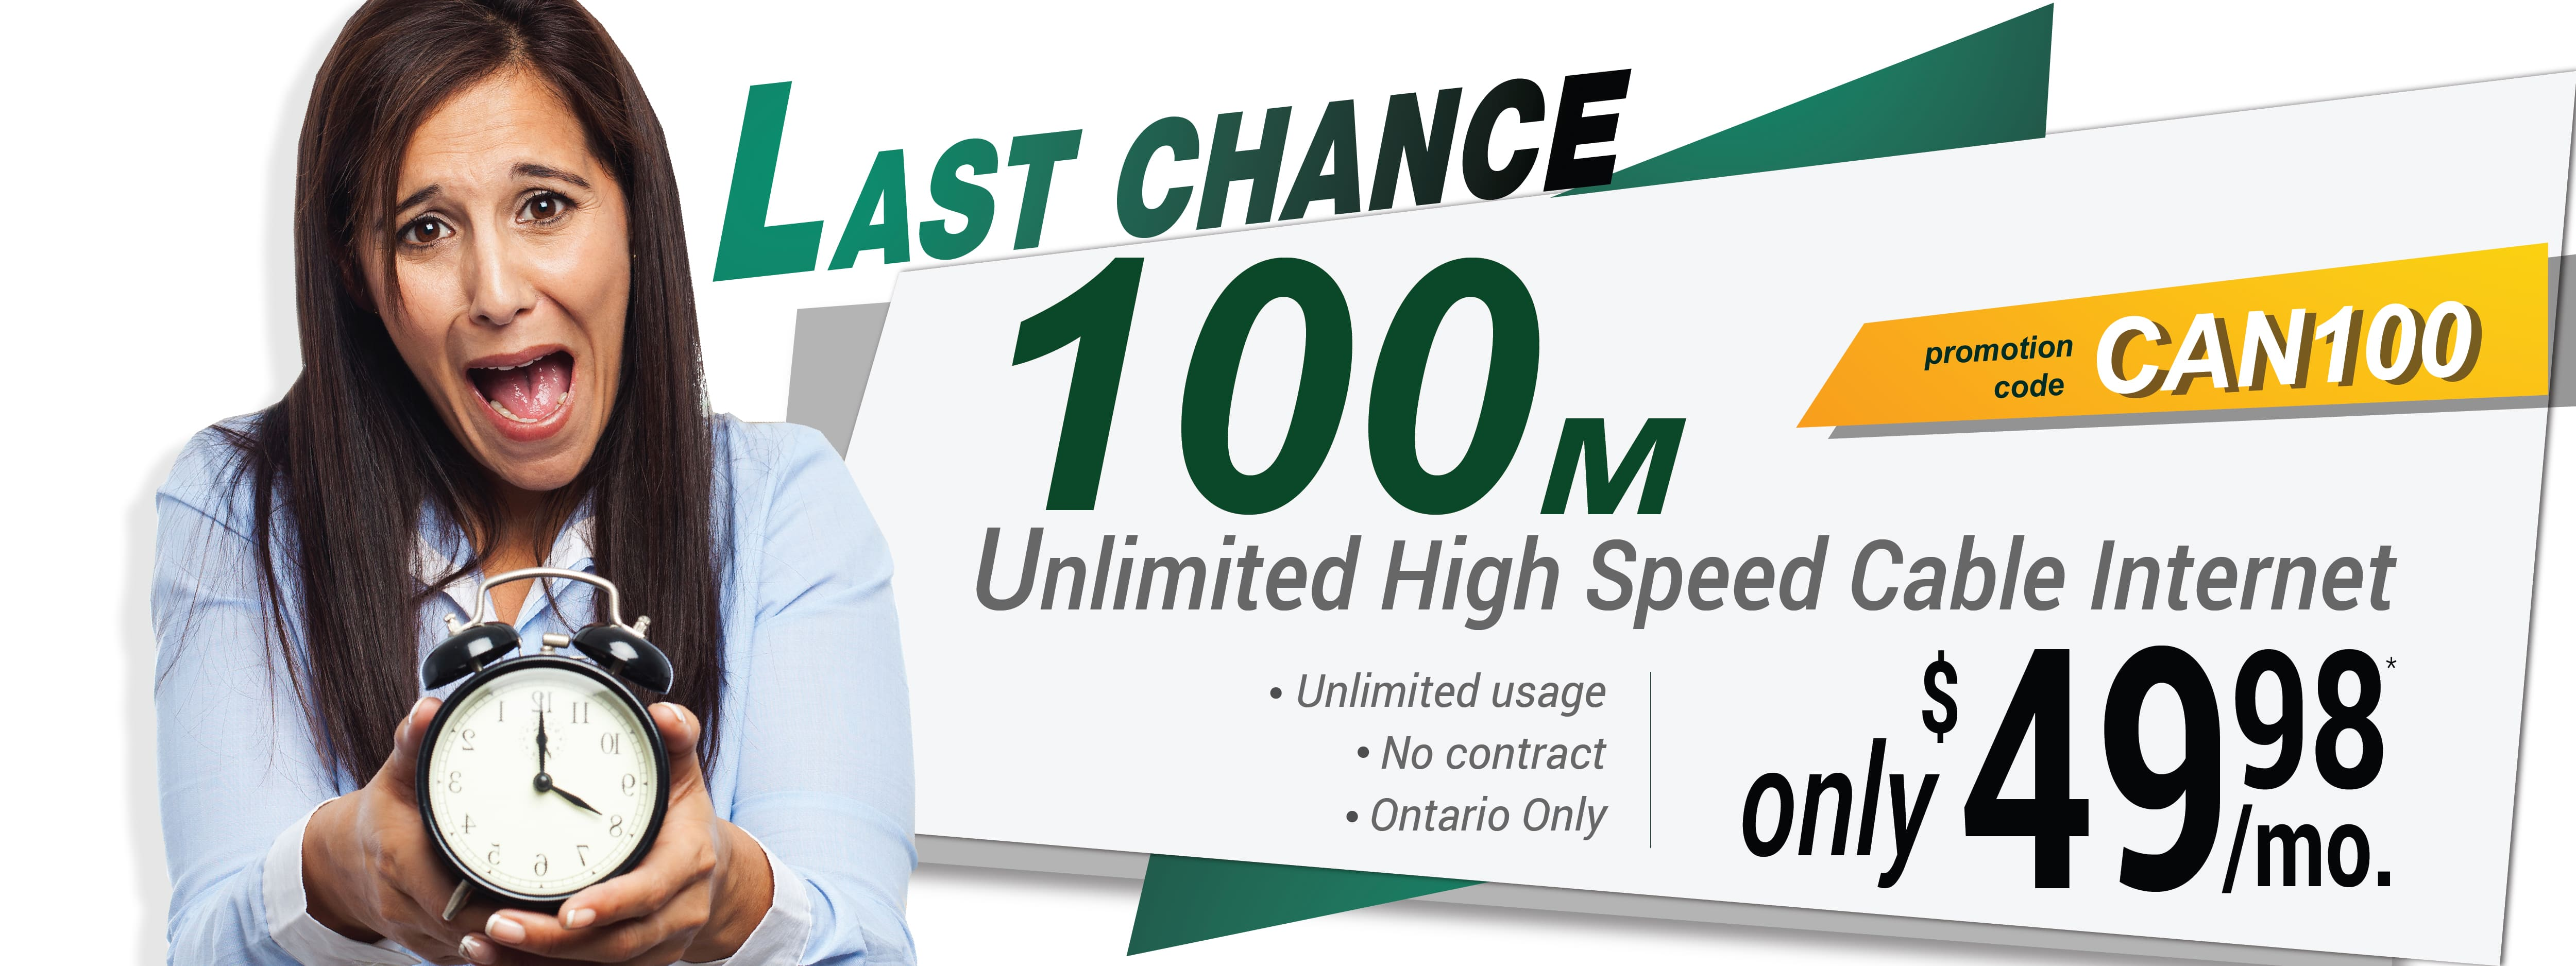 Last Chance to Save on High Speed Cable Internet Ontario (PROMOTION HAS ENDED)